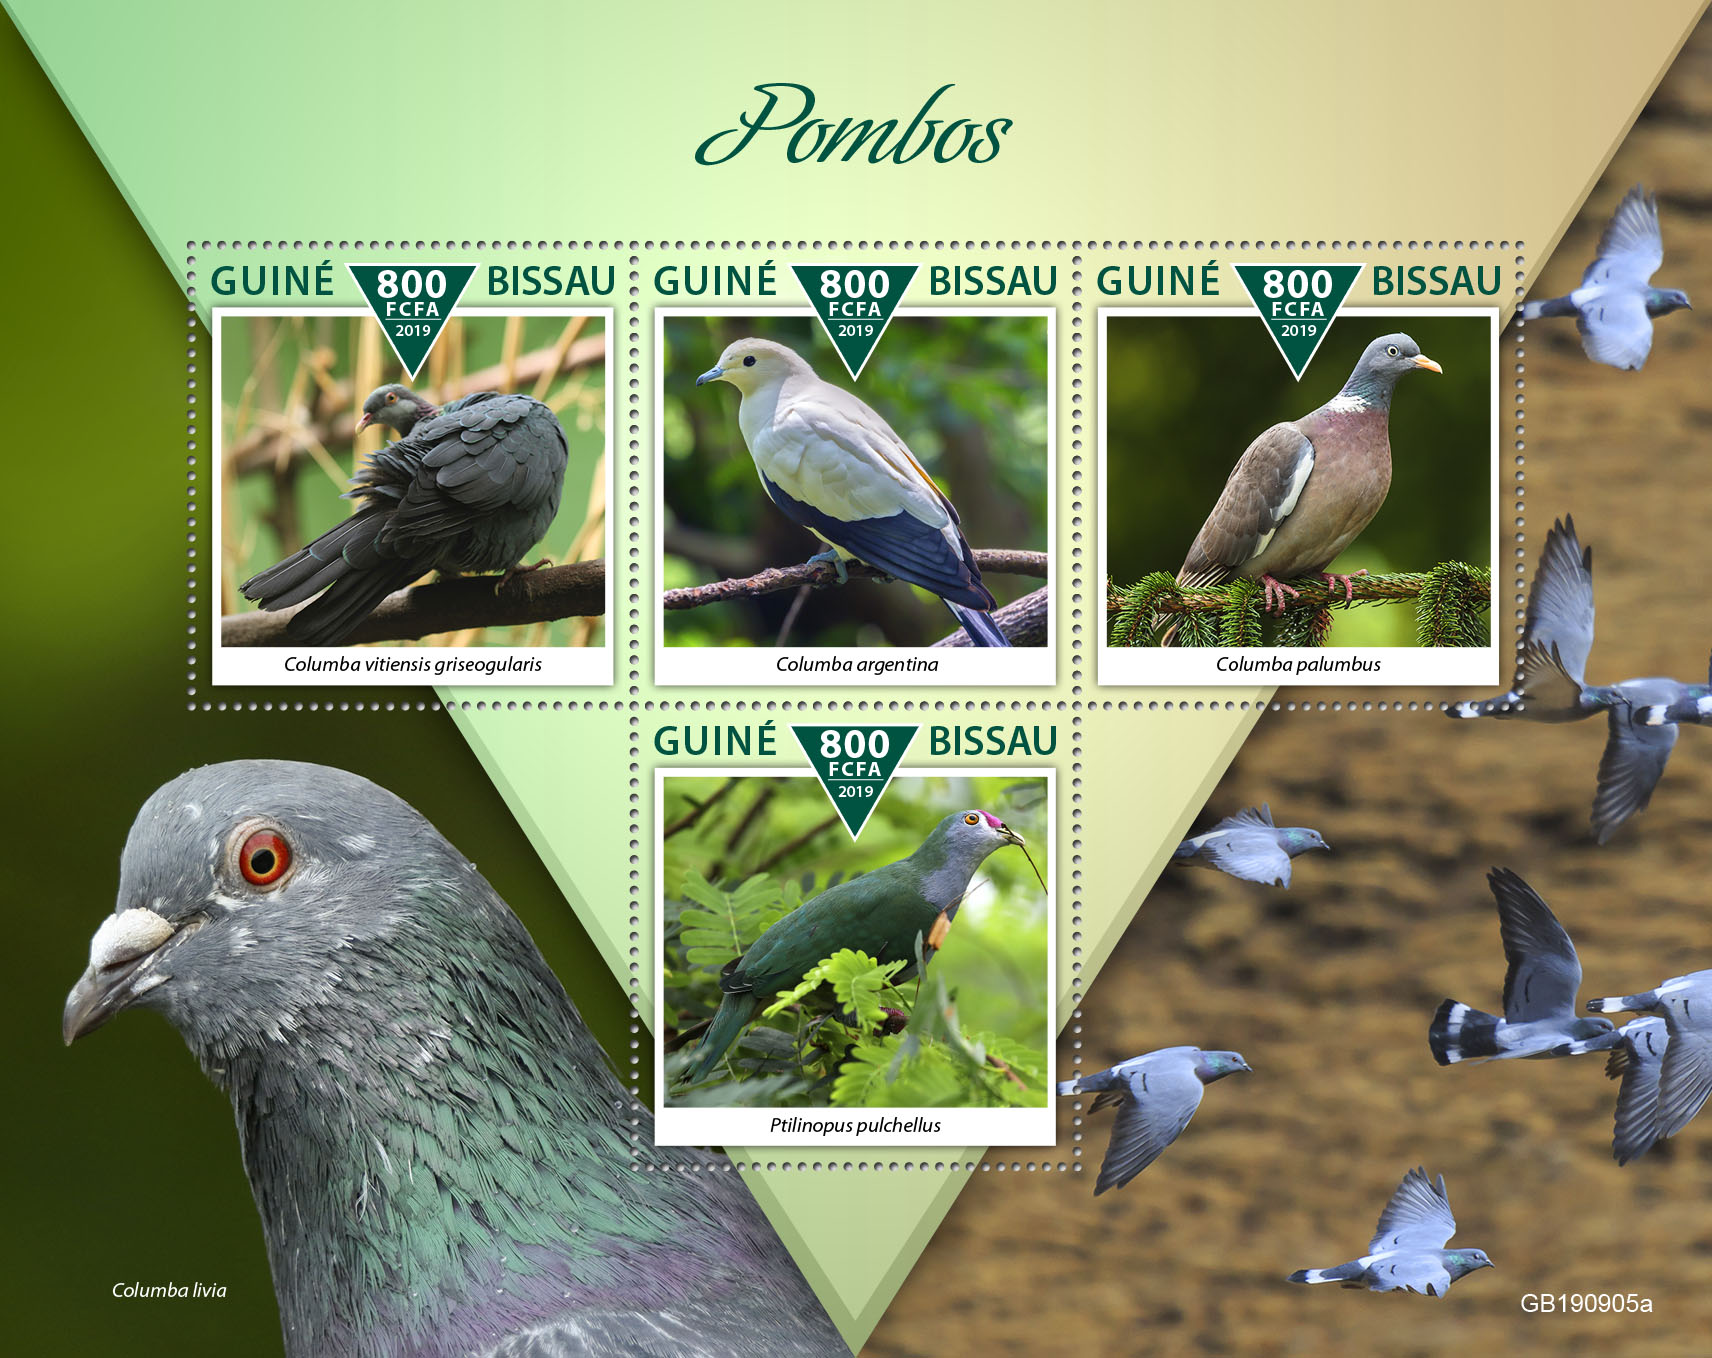 Pigeons - Issue of Guinée-Bissau postage stamps